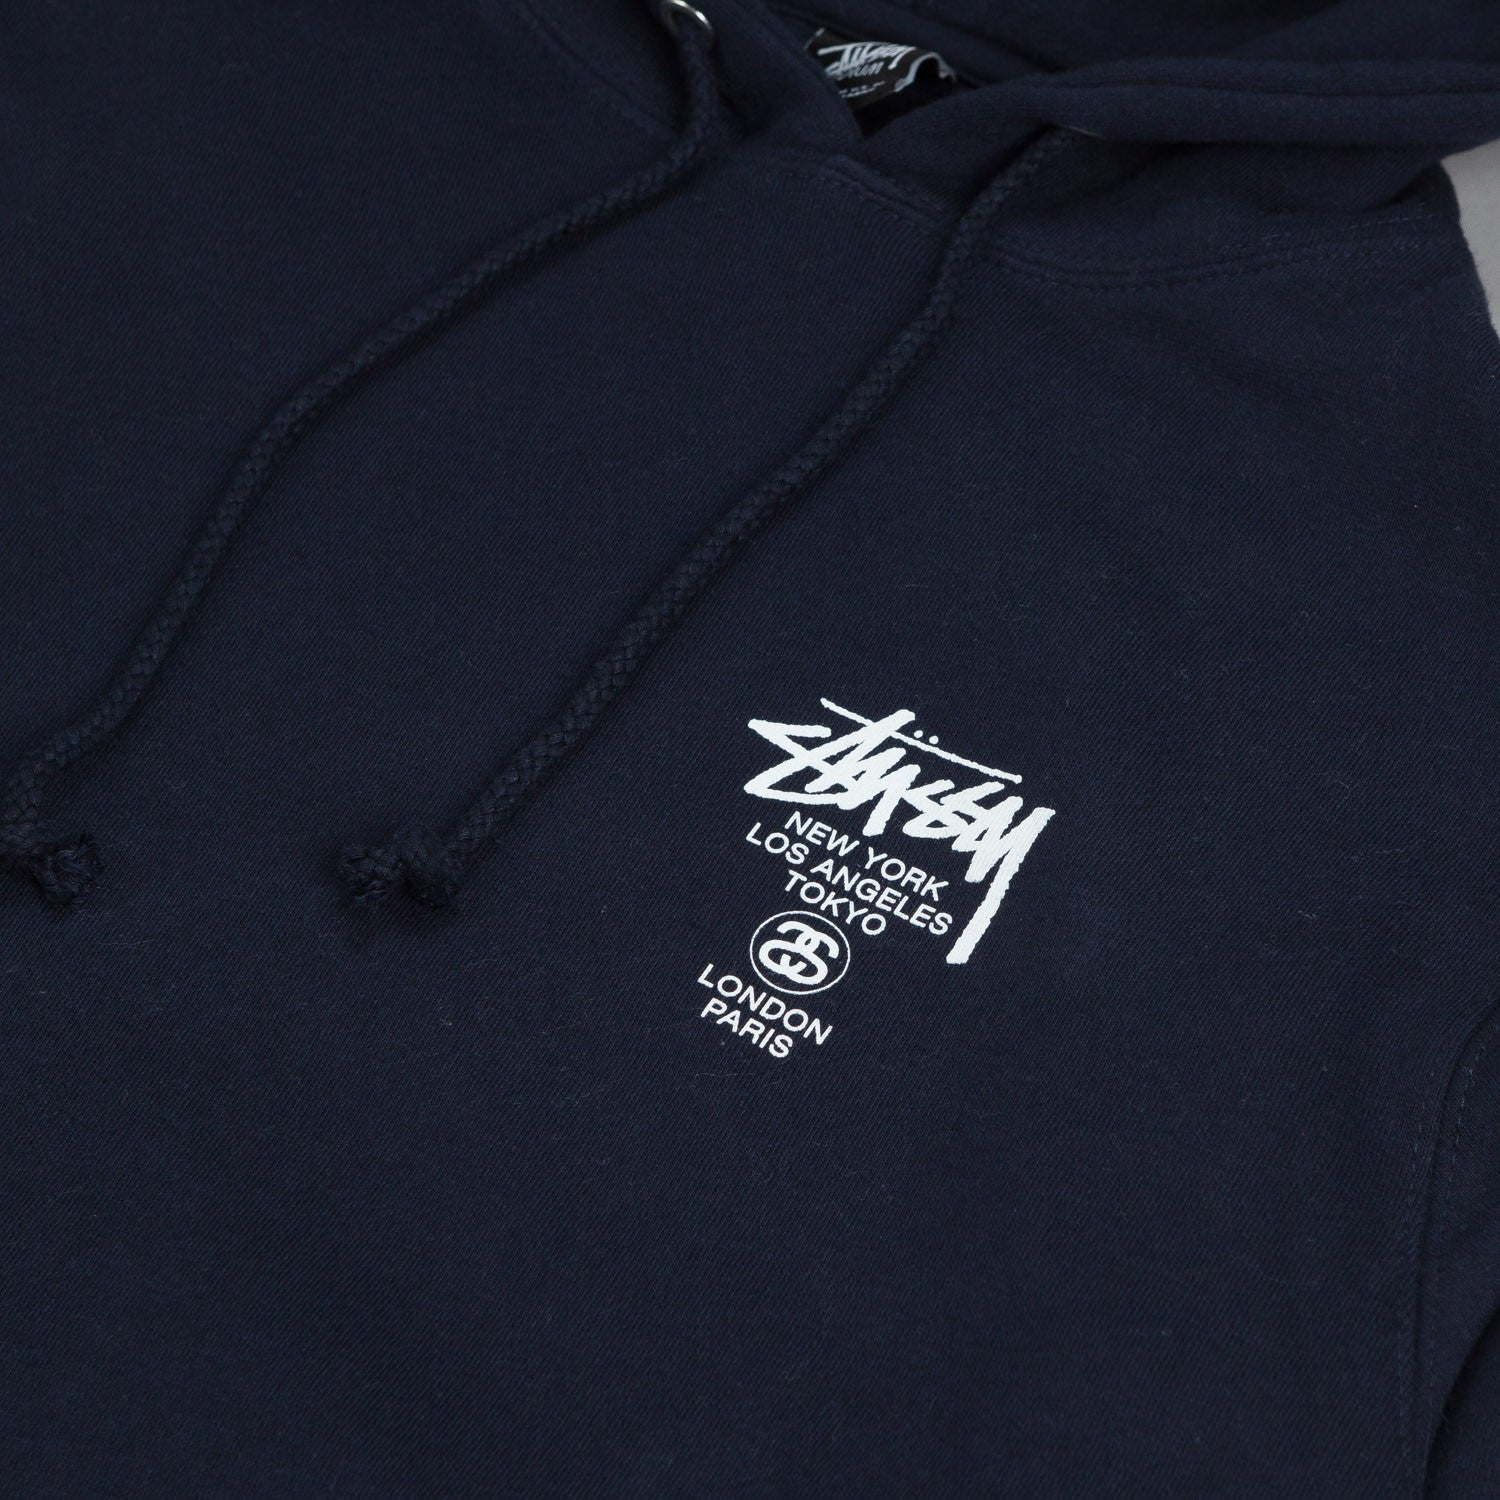 Stussy World Tour Hooded Sweatshirt Navy